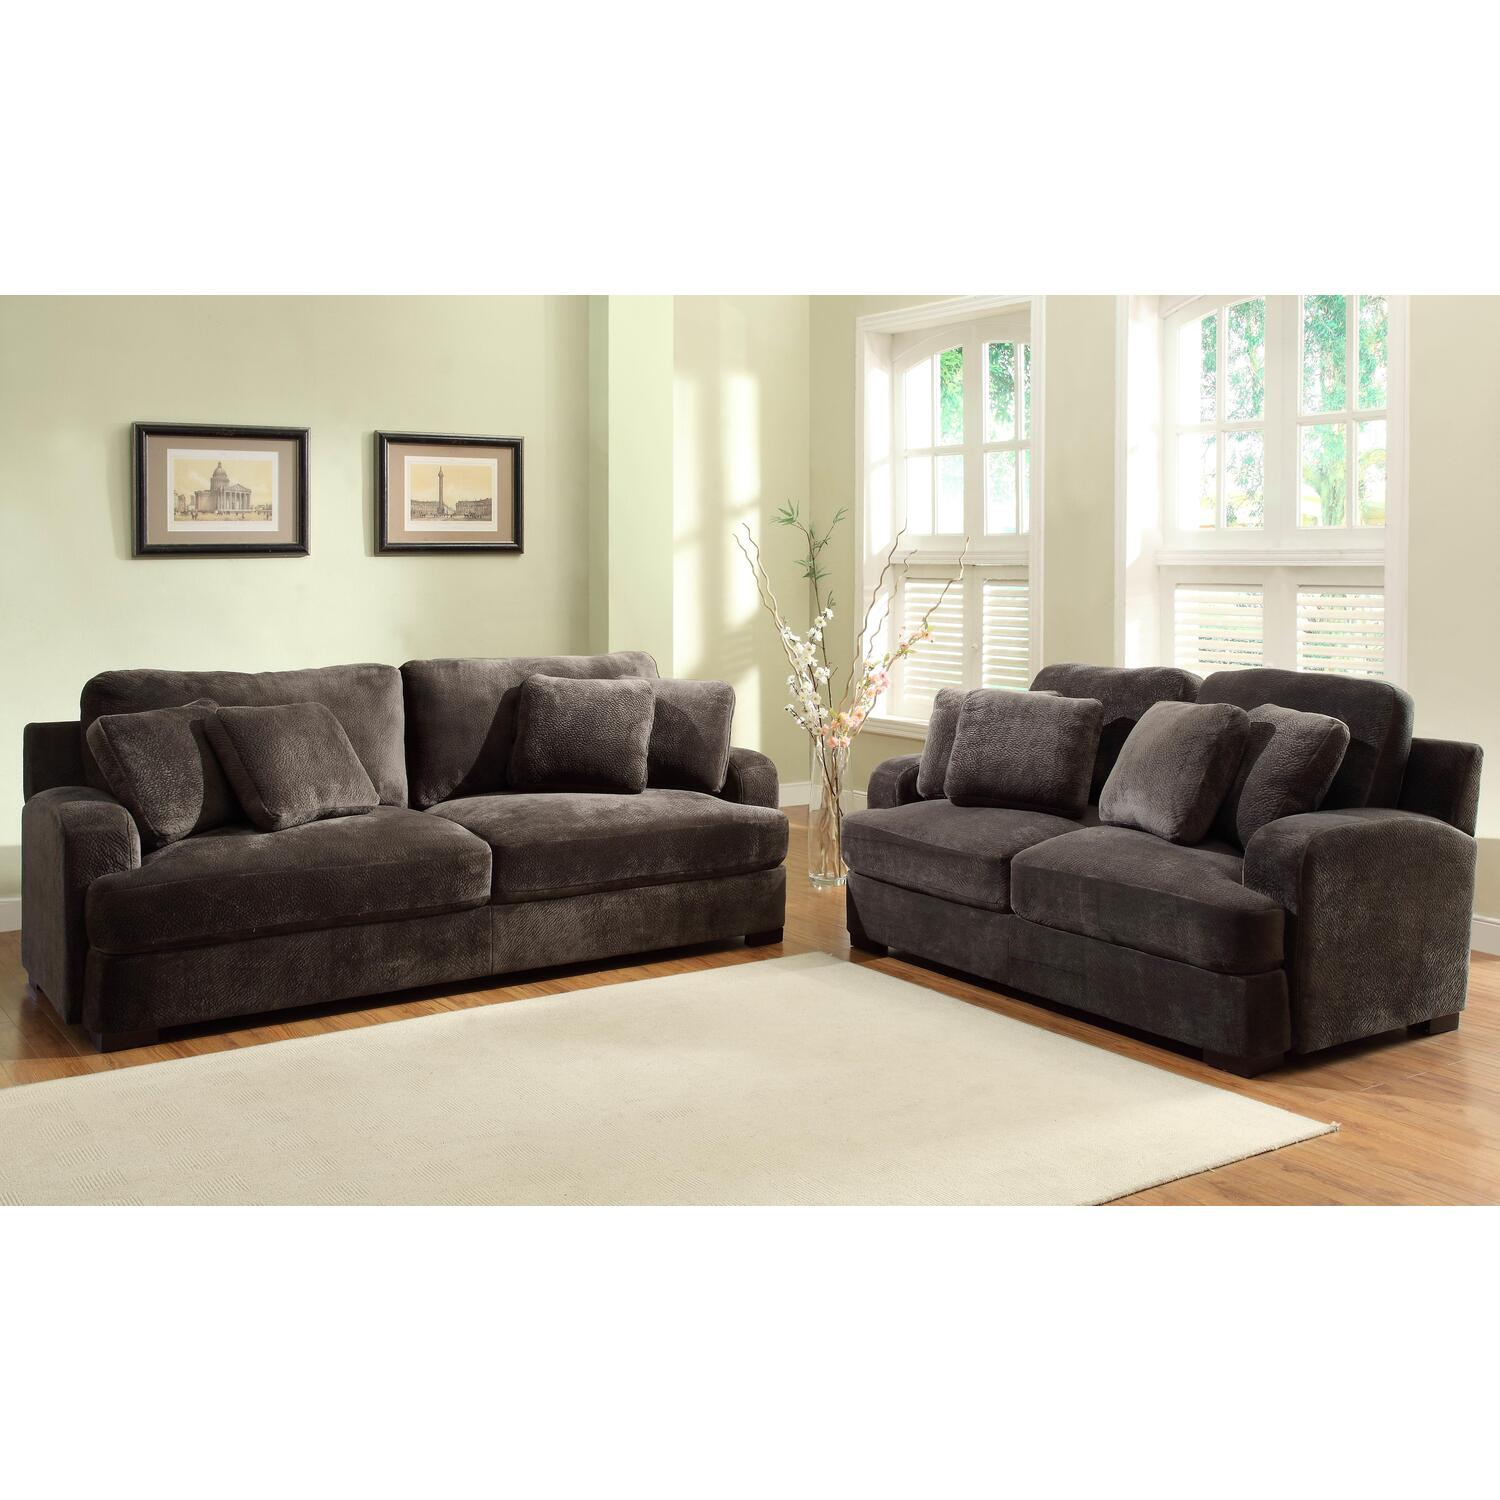 Sofas On Pinterest Sectional Sofas Sleeper Sofas And